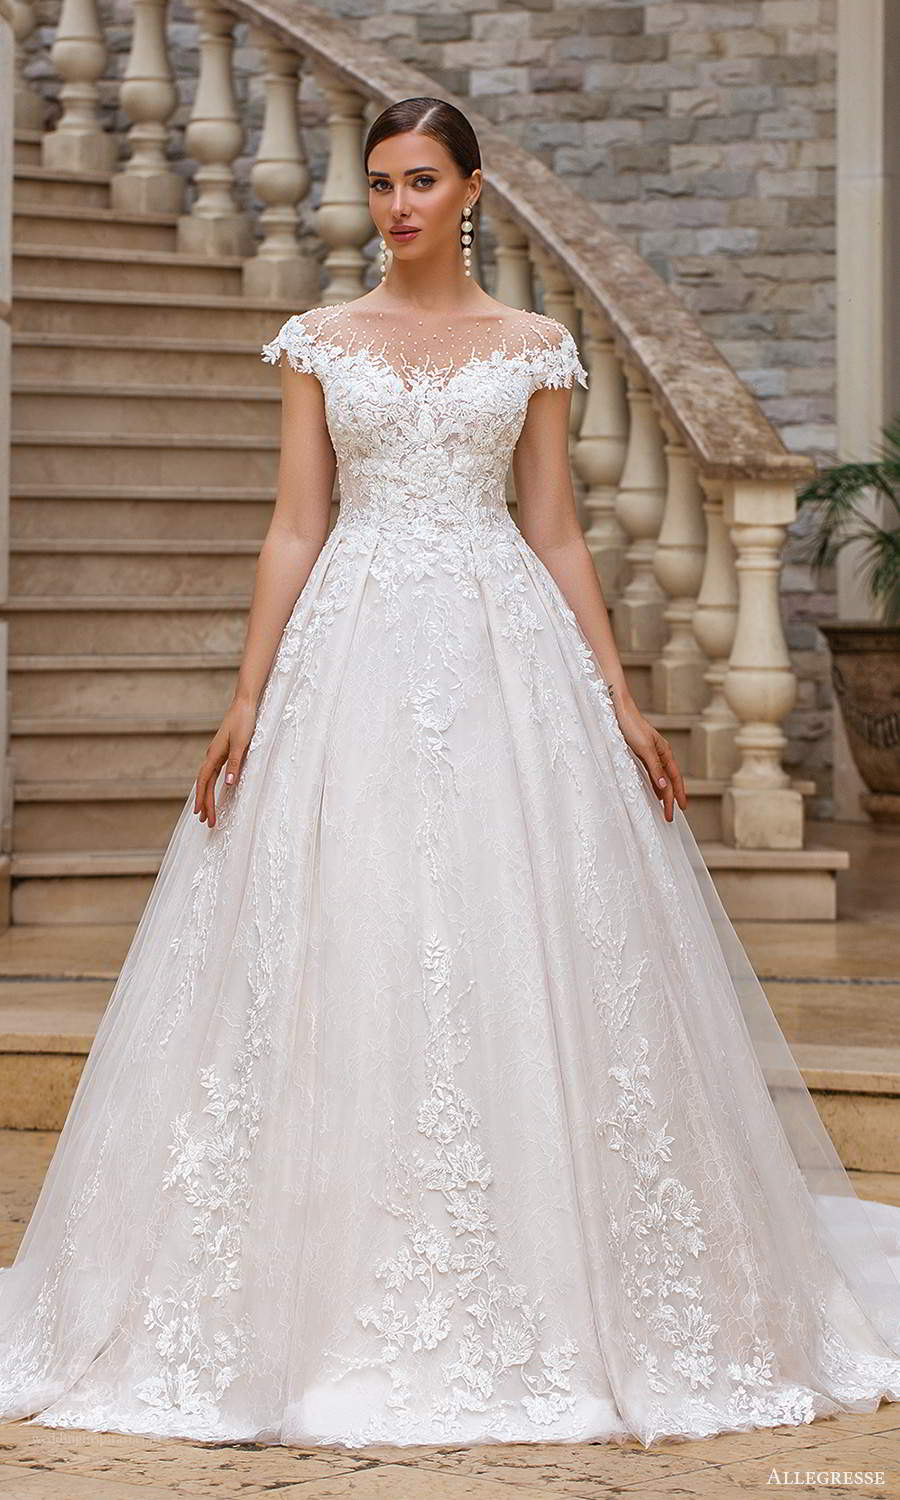 allegresse 2021 bridal cap sleeves off shoulder sweetheart neckline fully embellished a line ball gown wedding dress chapel train (16) mv